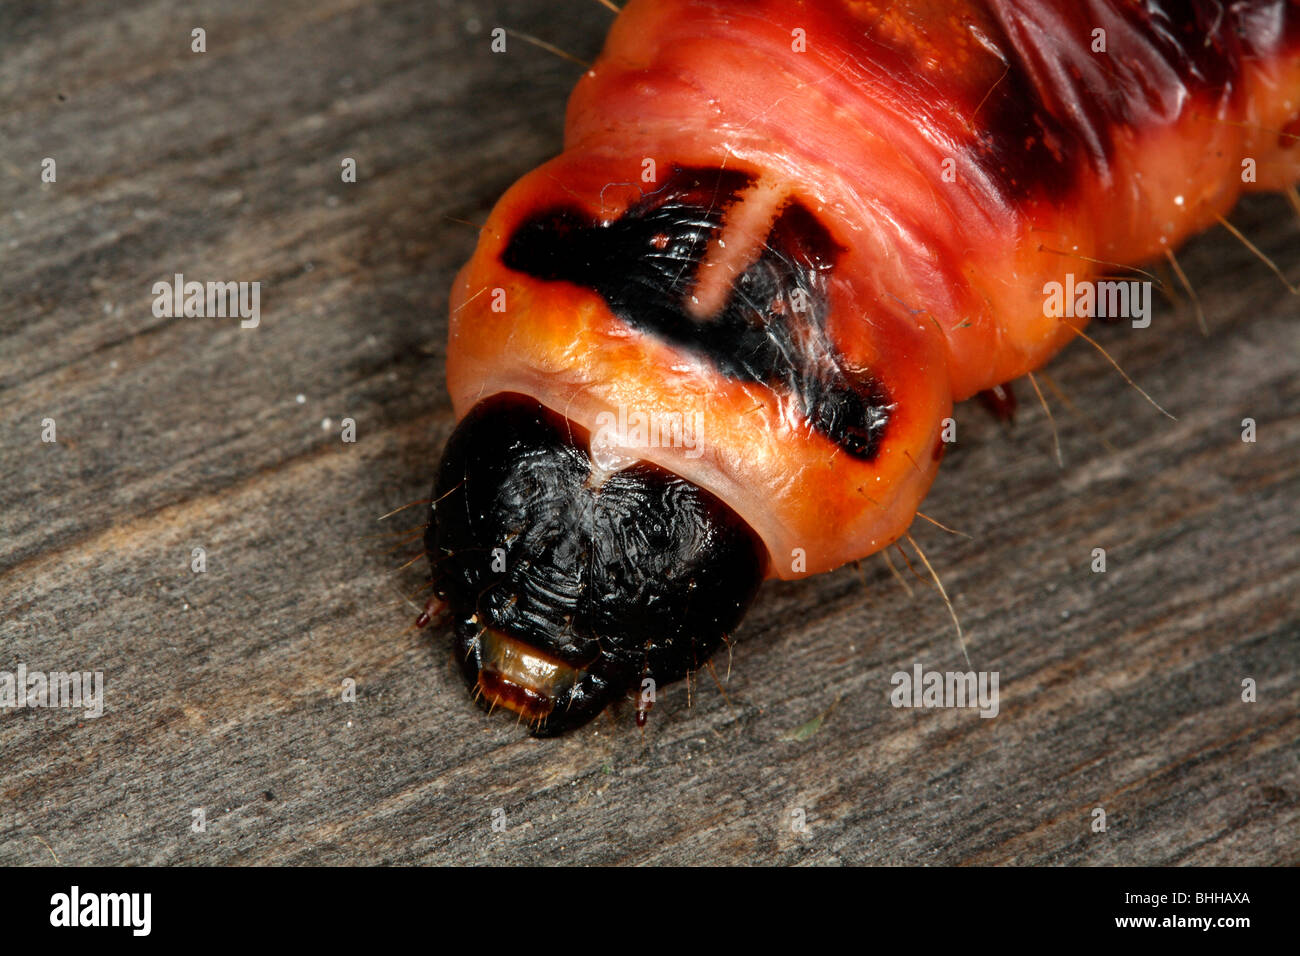 Goat Moth caterpillar, close-up, Sweden. Stock Photo